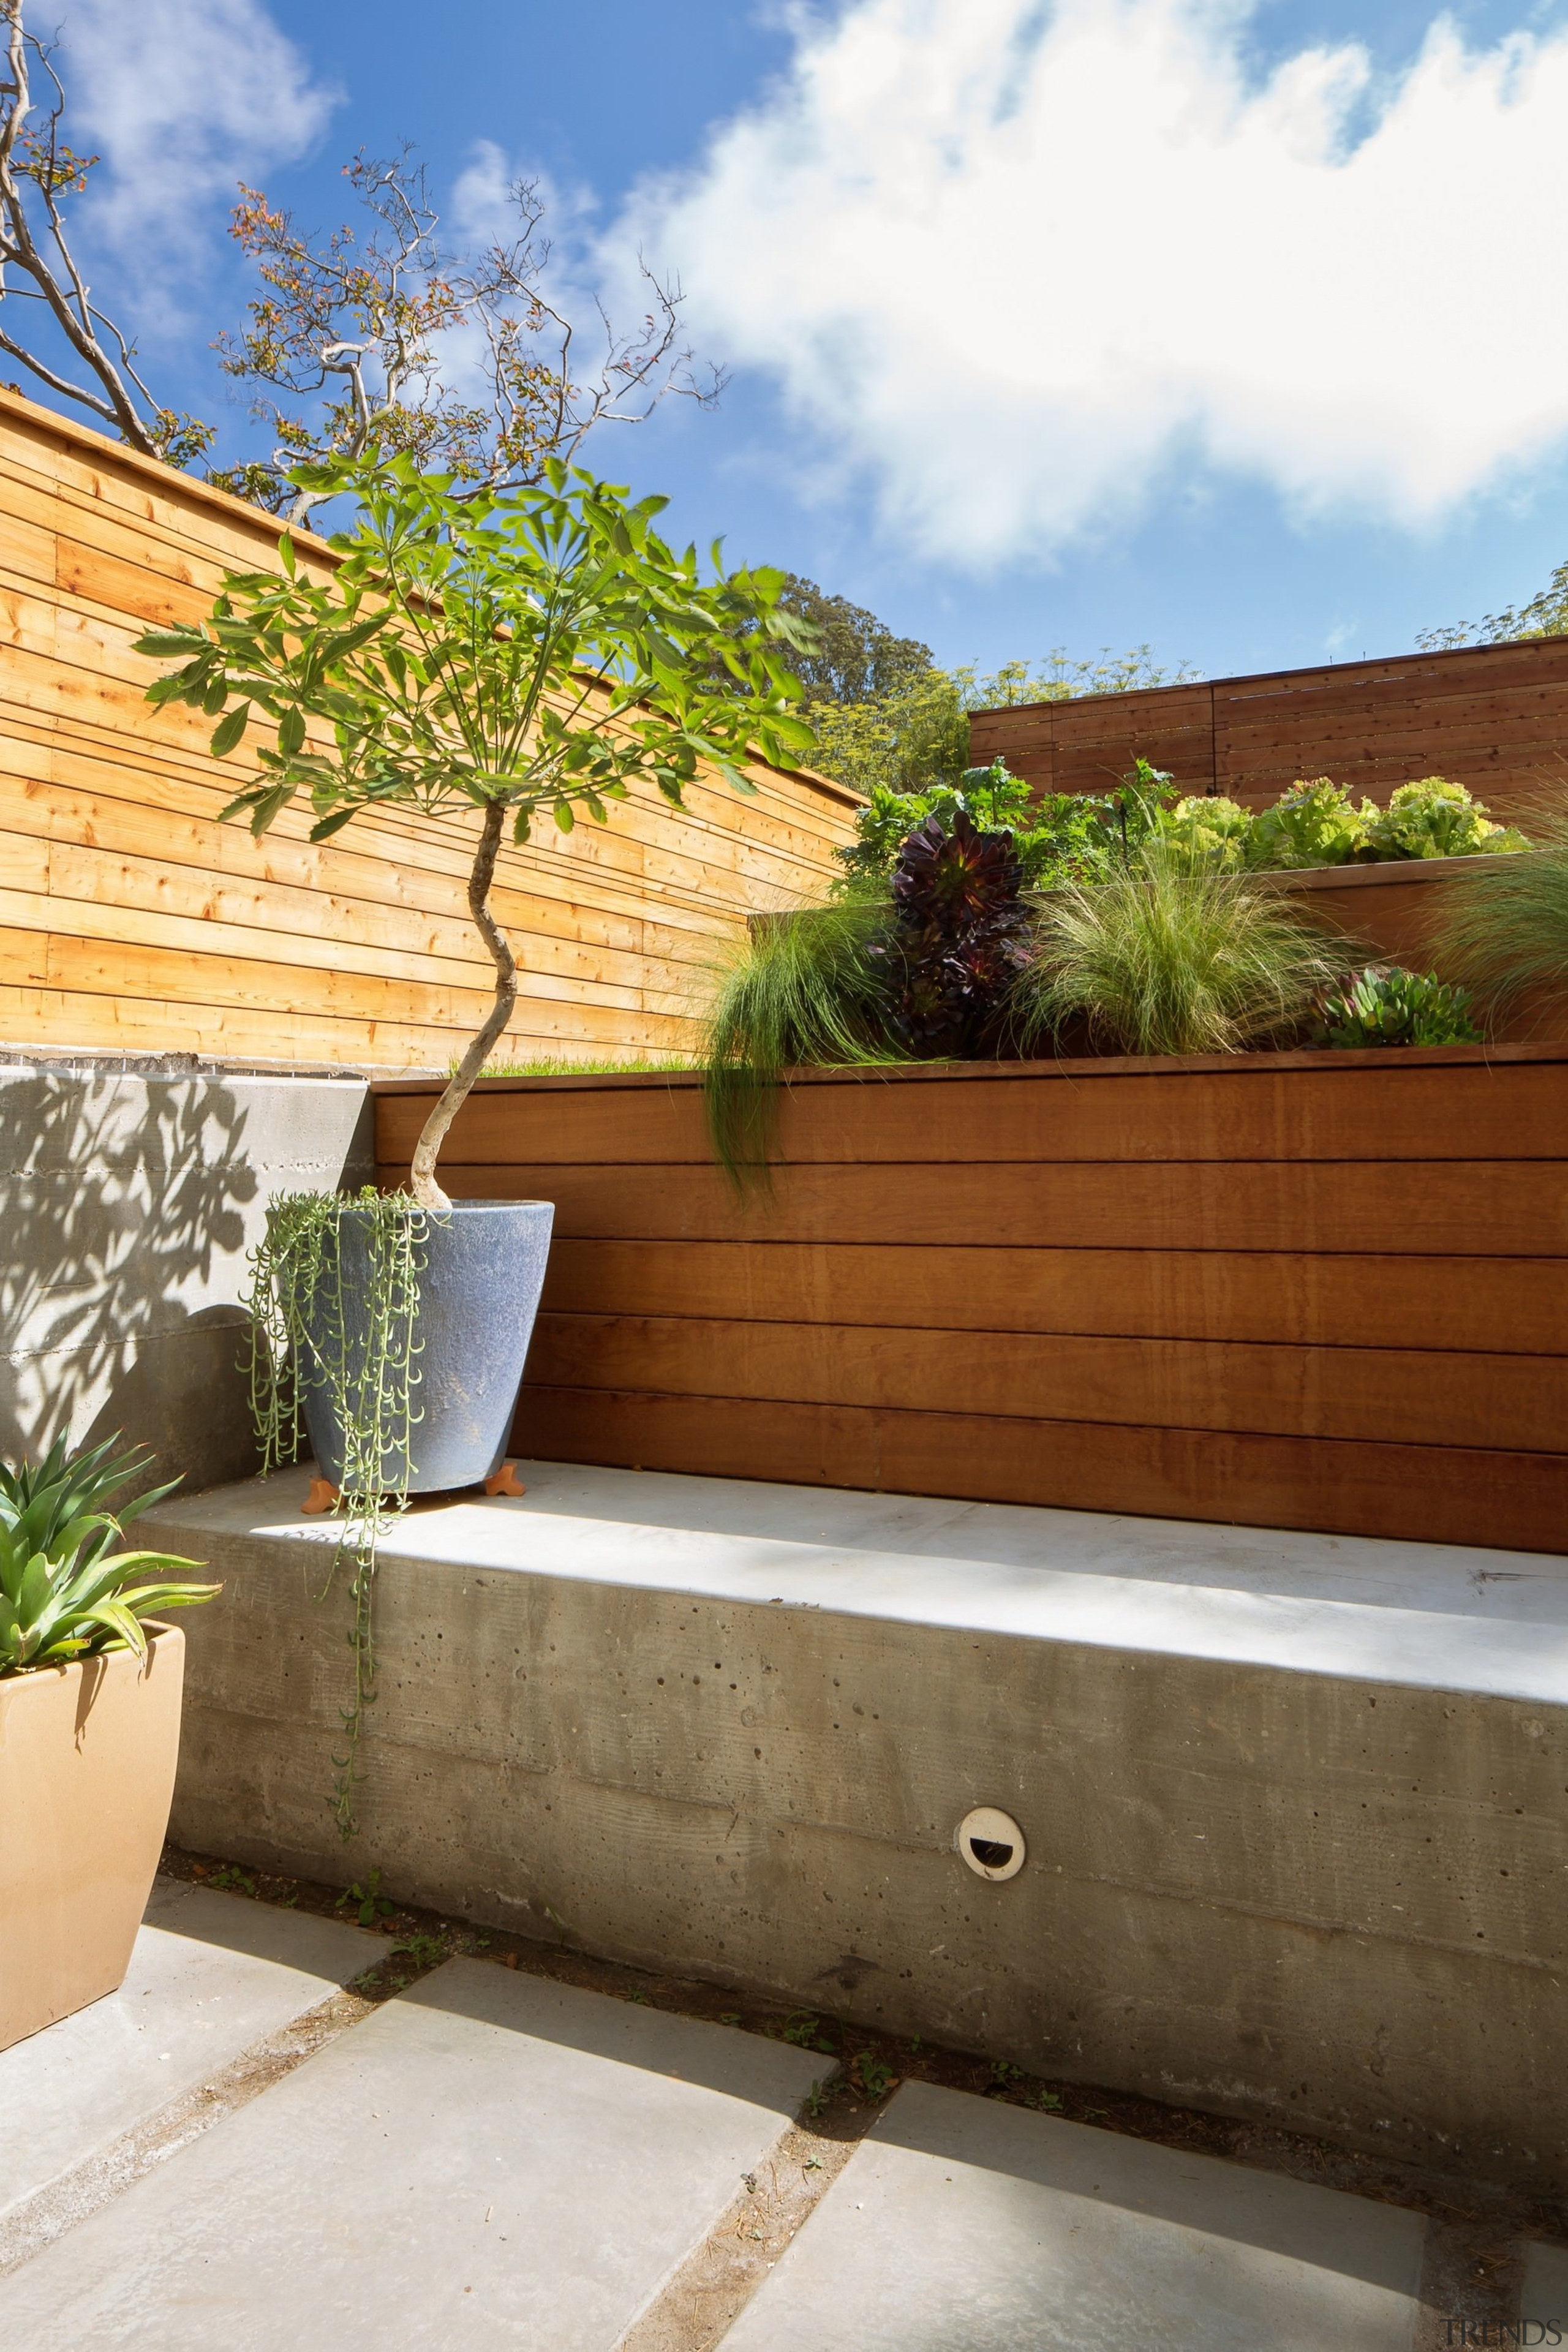 The terraced garden is a unique solution to architecture, backyard, estate, home, house, landscape, outdoor structure, plant, property, real estate, tree, wall, brown